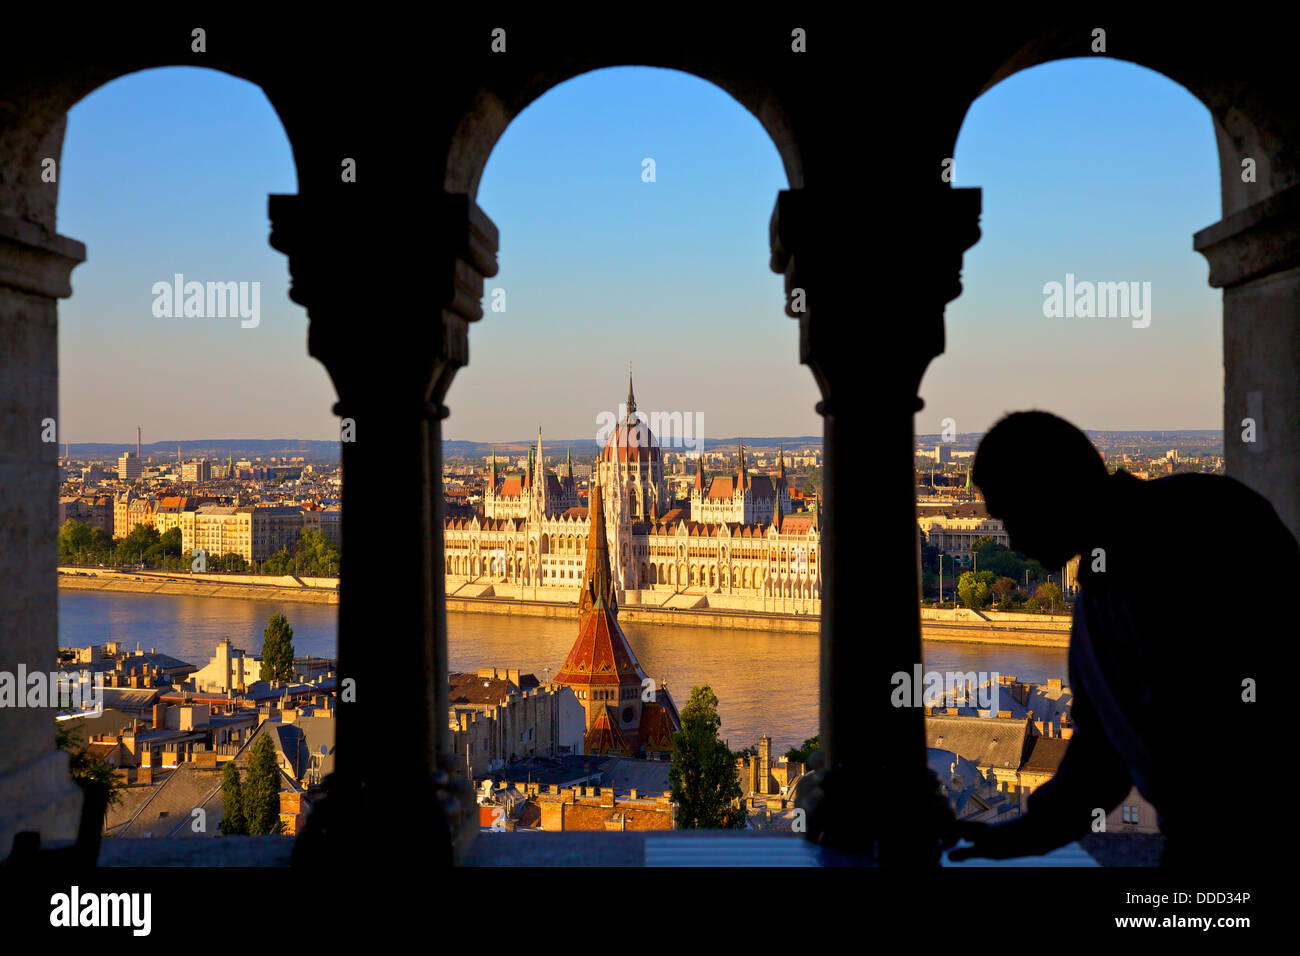 Waiter at Cafe, Fisherman's Bastion, Budapest, Hungary, Europe - Stock Image